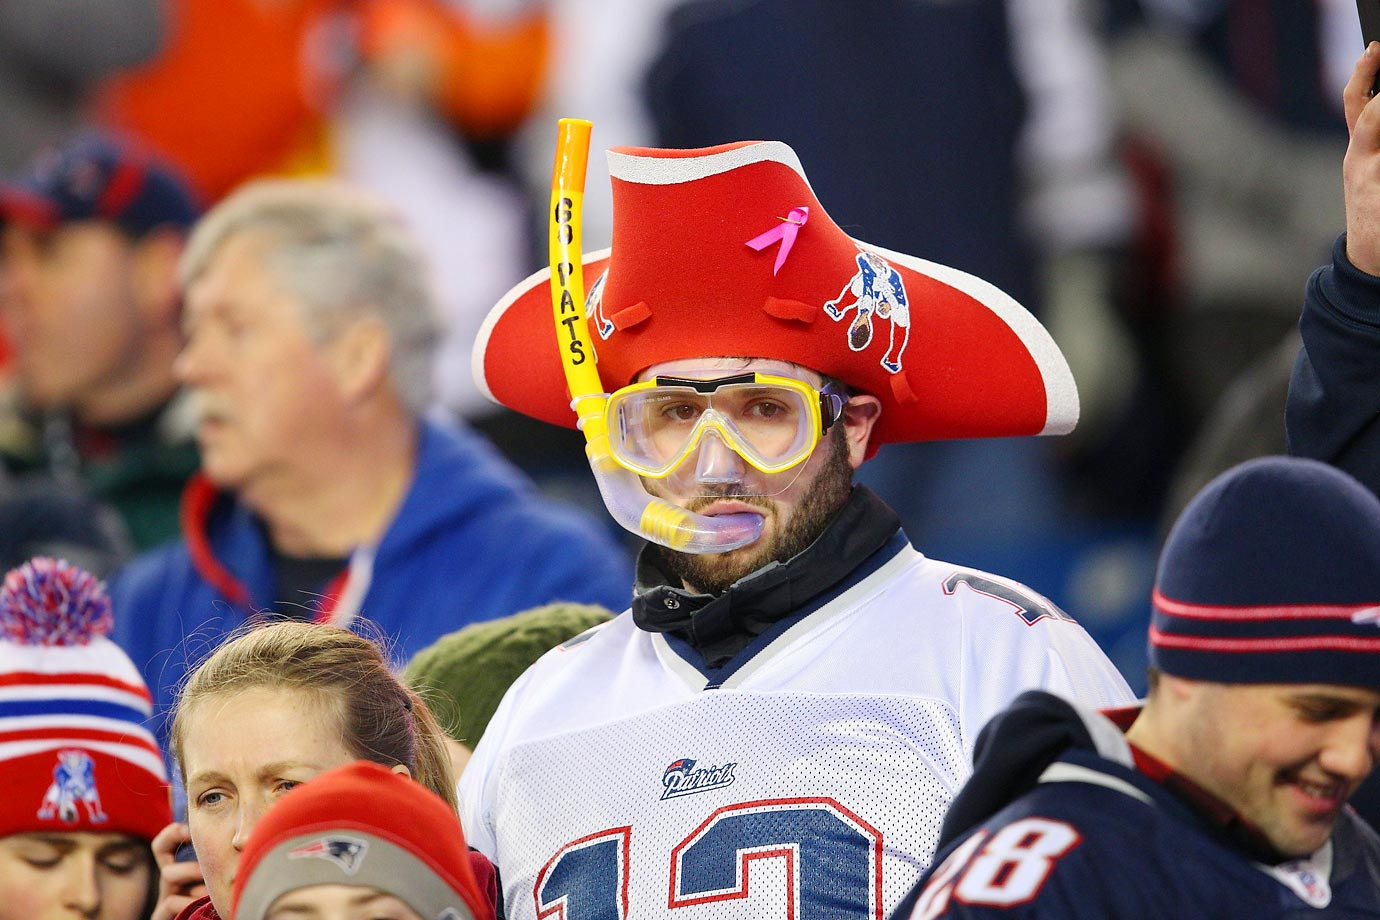 This Patriots fan might know something about deflated balls.